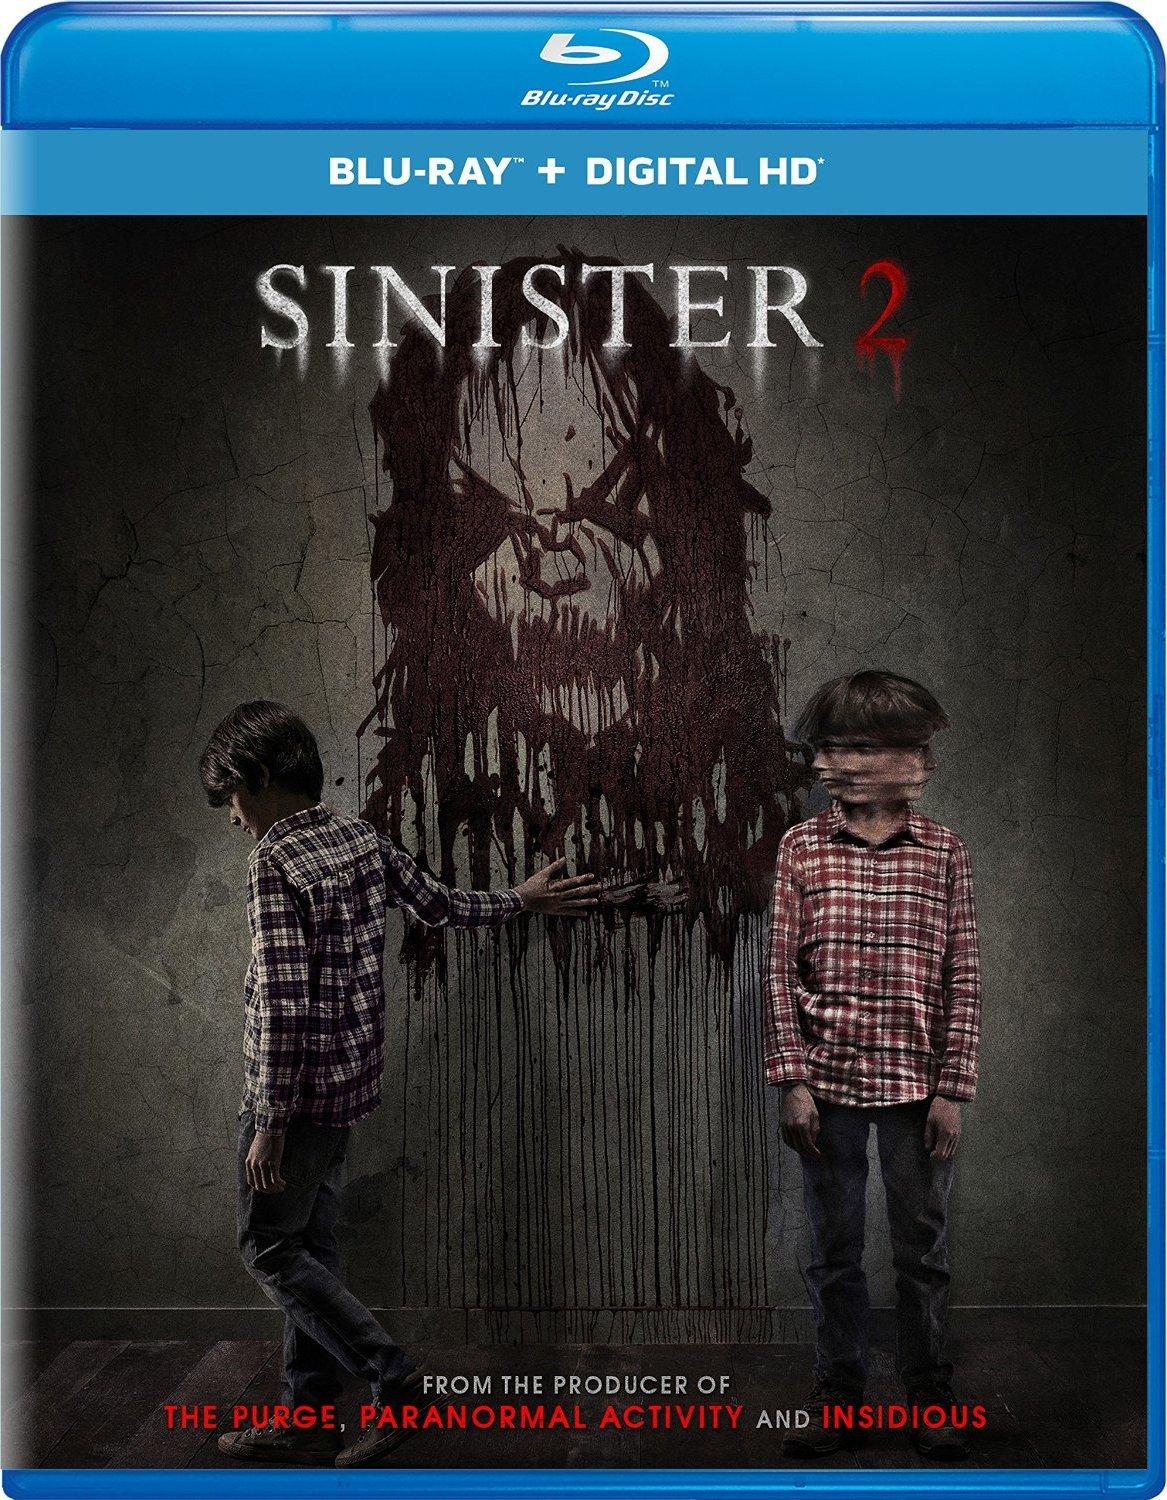 Sinister 2 (2015) Blu-ray